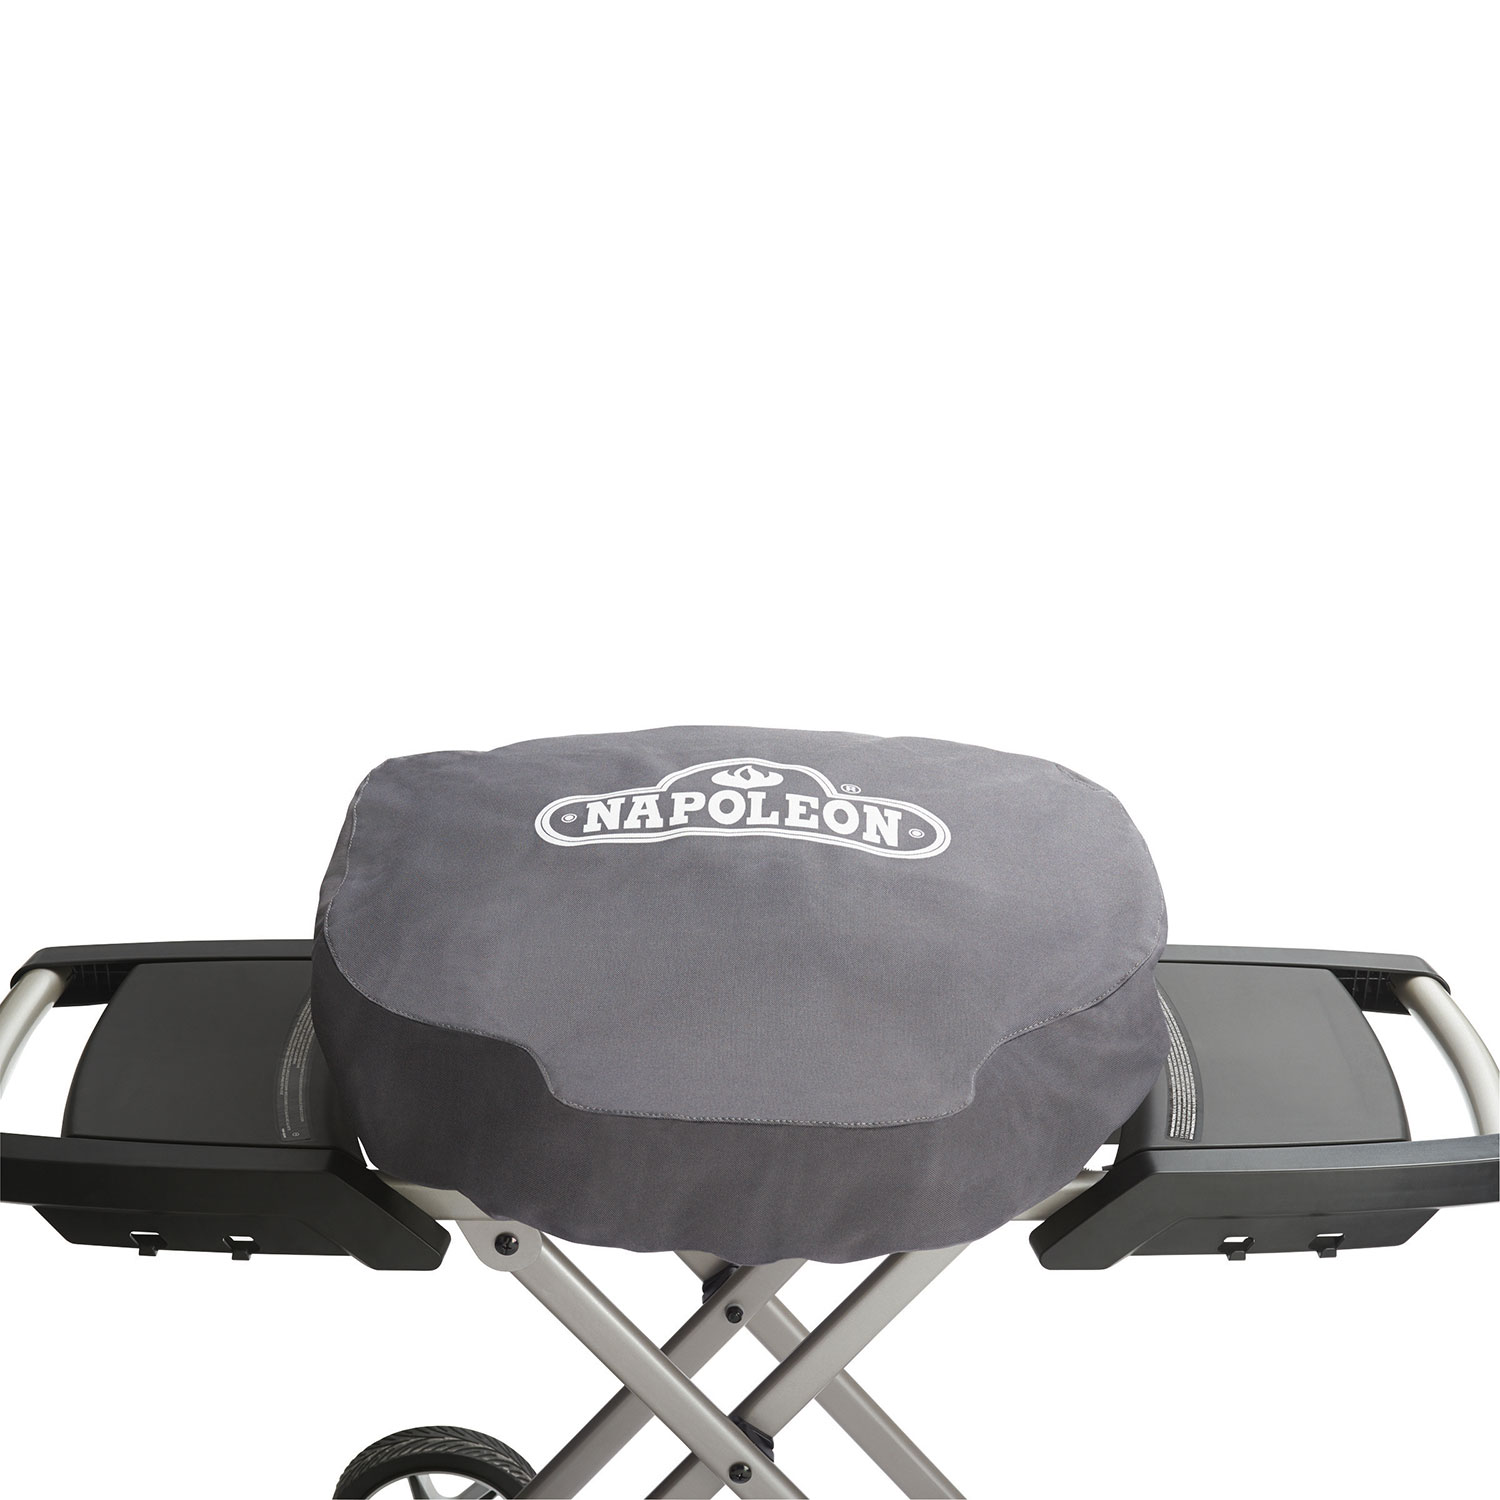 Napoleon Grill Cover For TravelQ TQ285/PRO285 Portable Gas Grills   Grey :  BBQ Accessories   Best Buy Canada